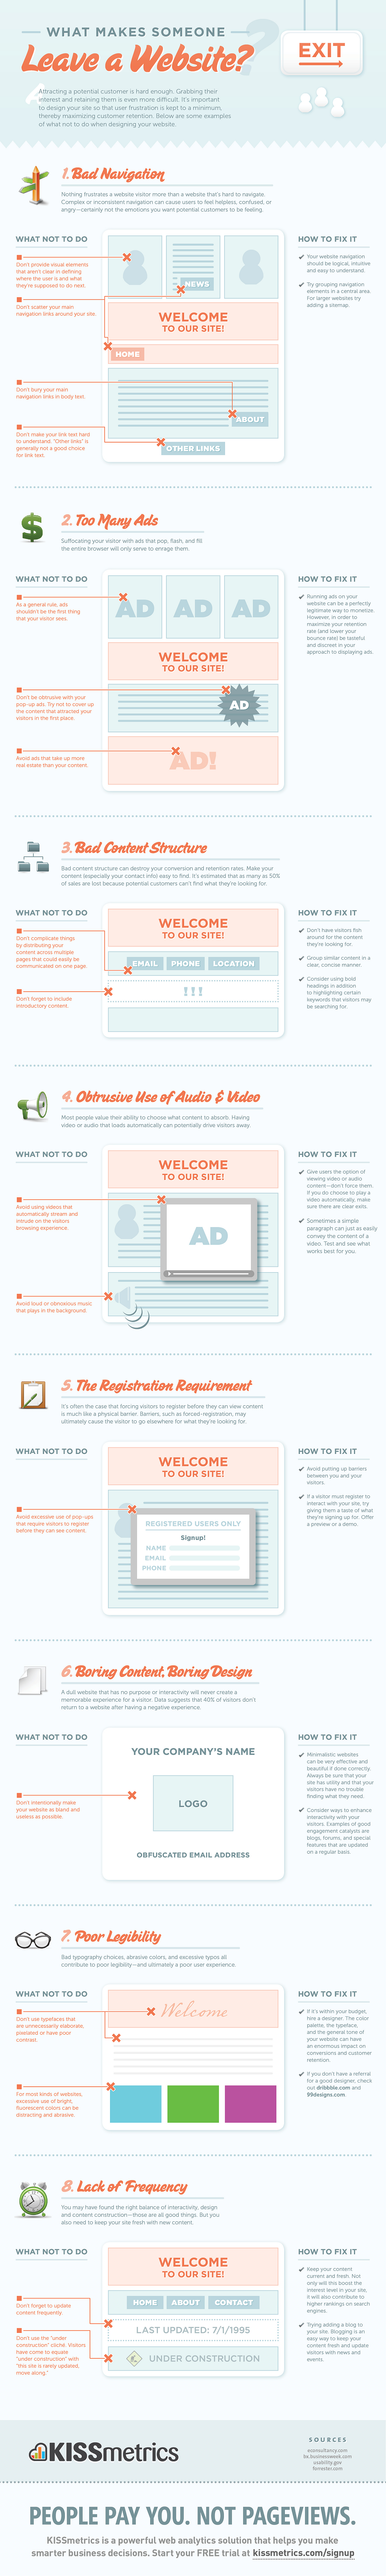 What Makes People Leave Your Website [Infographic]